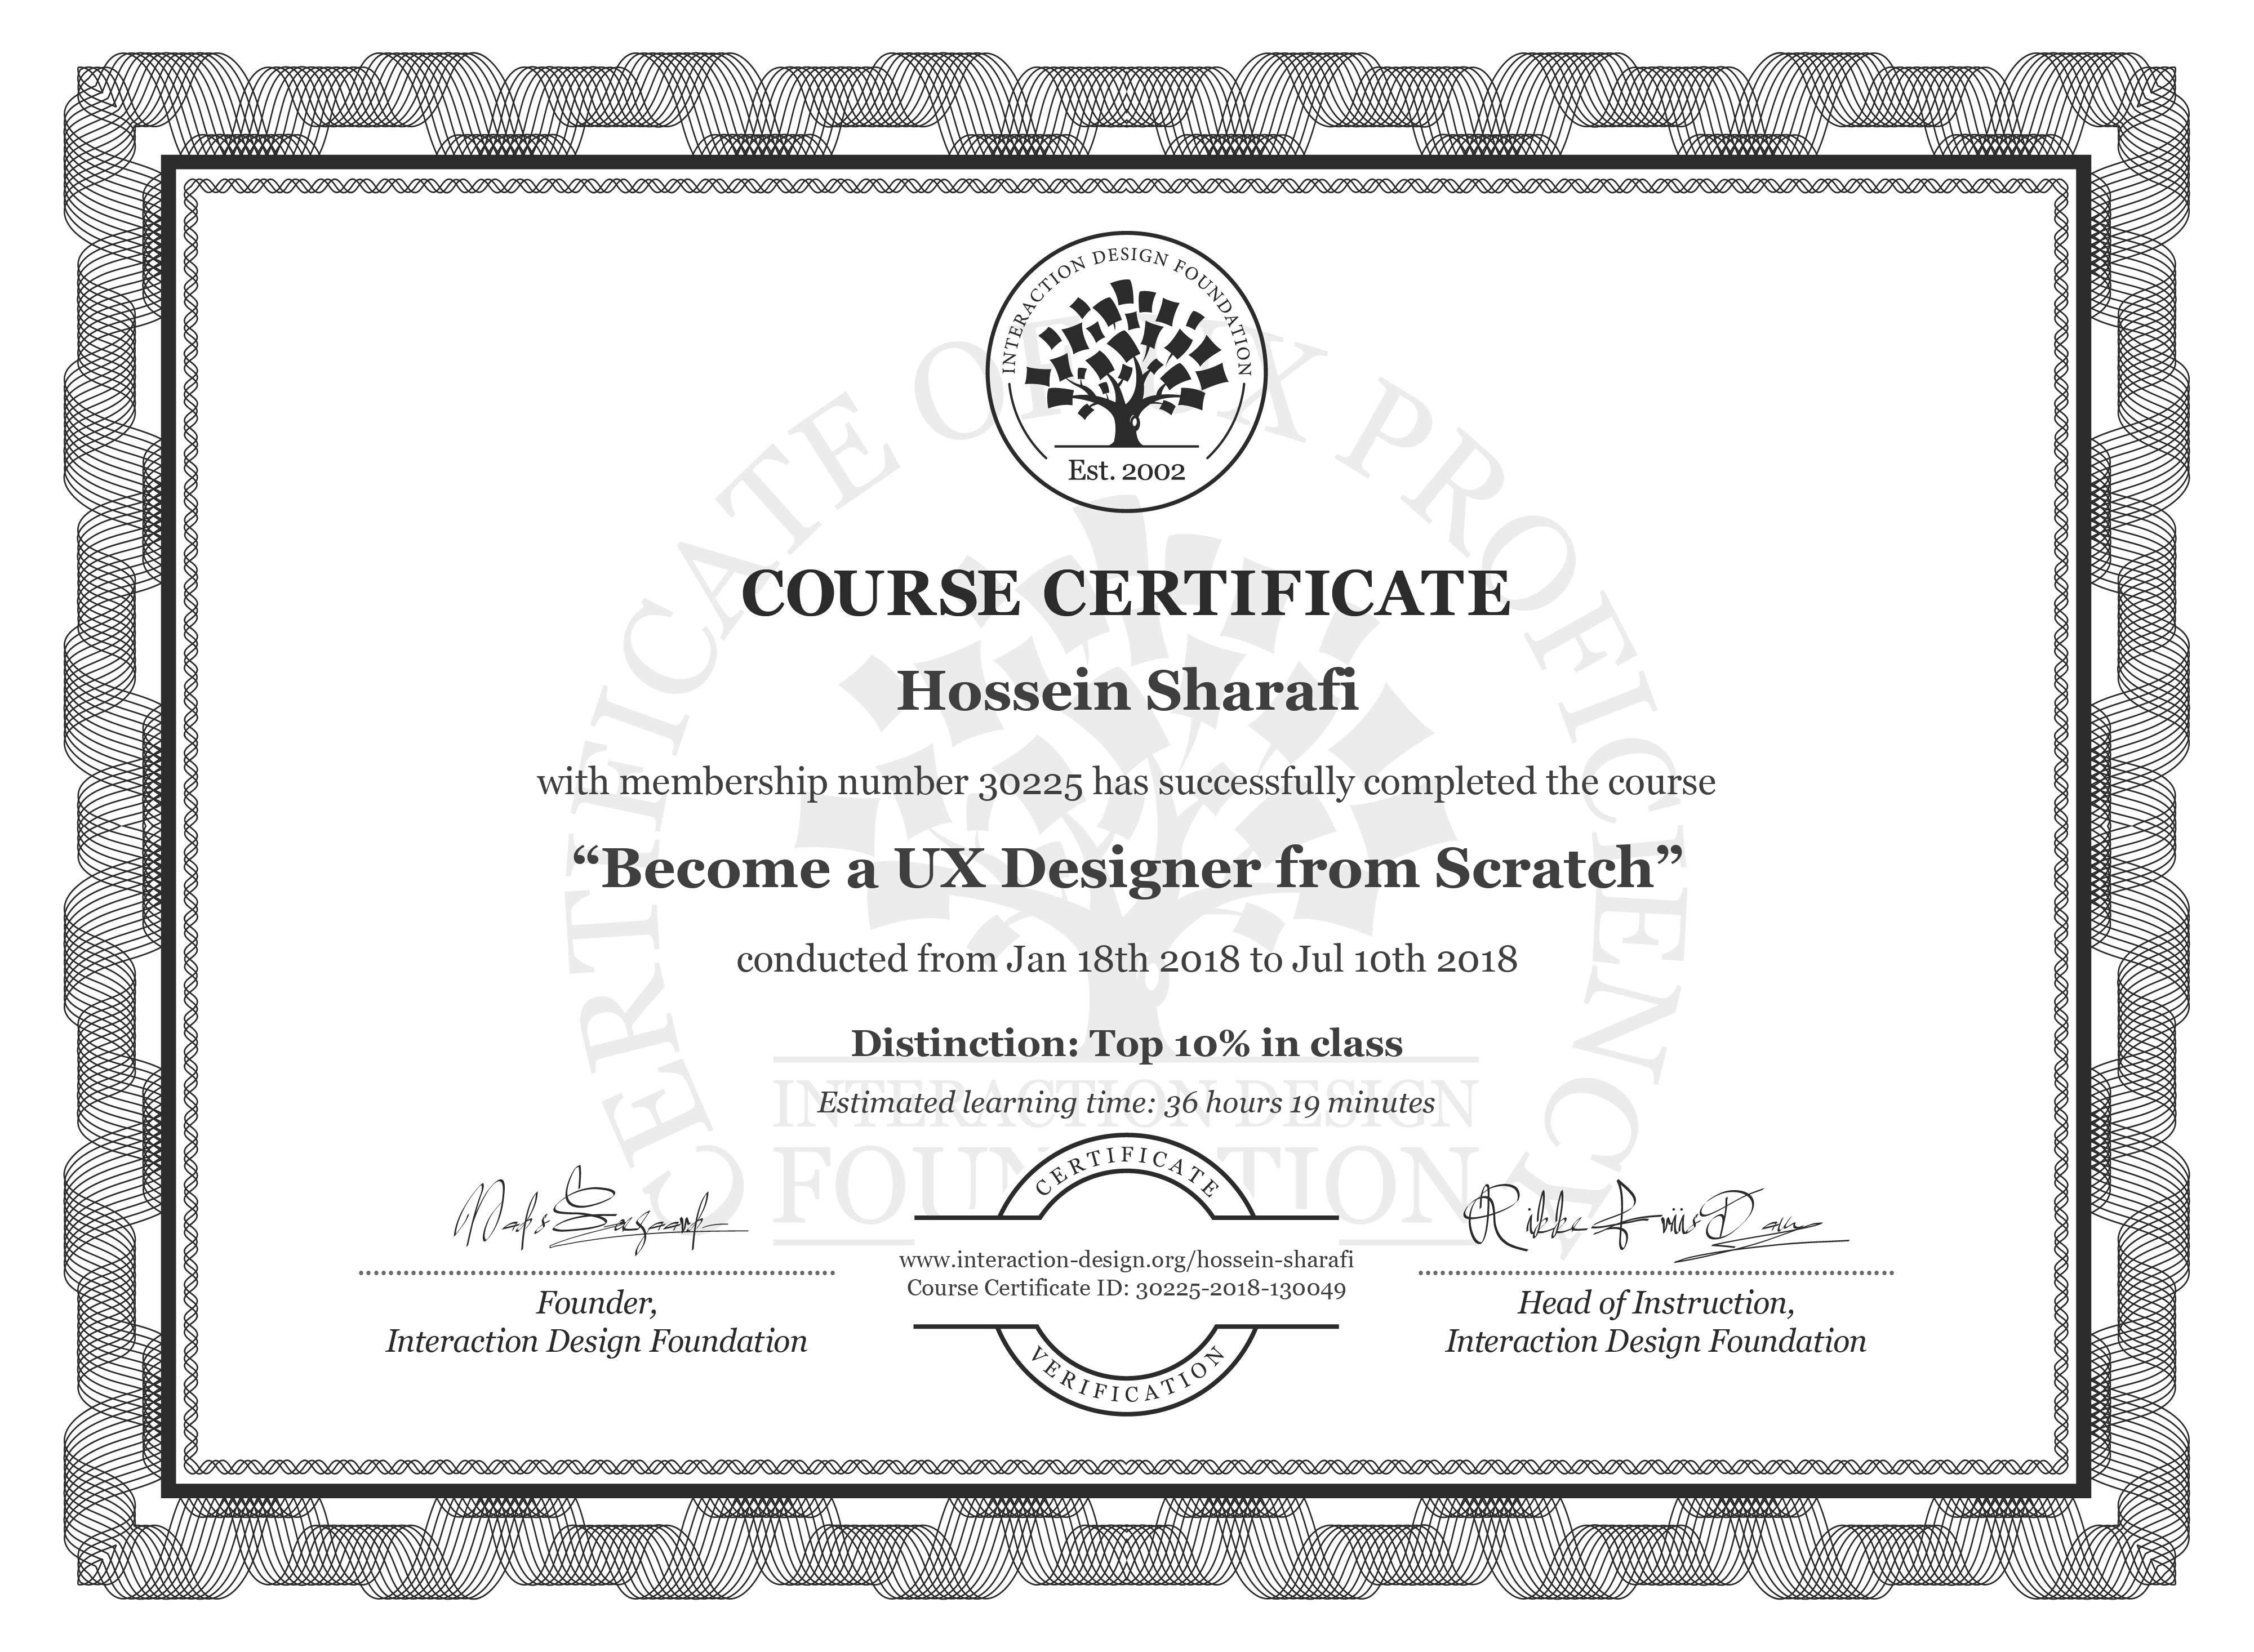 Hossein Sharafi: Course Certificate - Become a UX Designer from Scratch